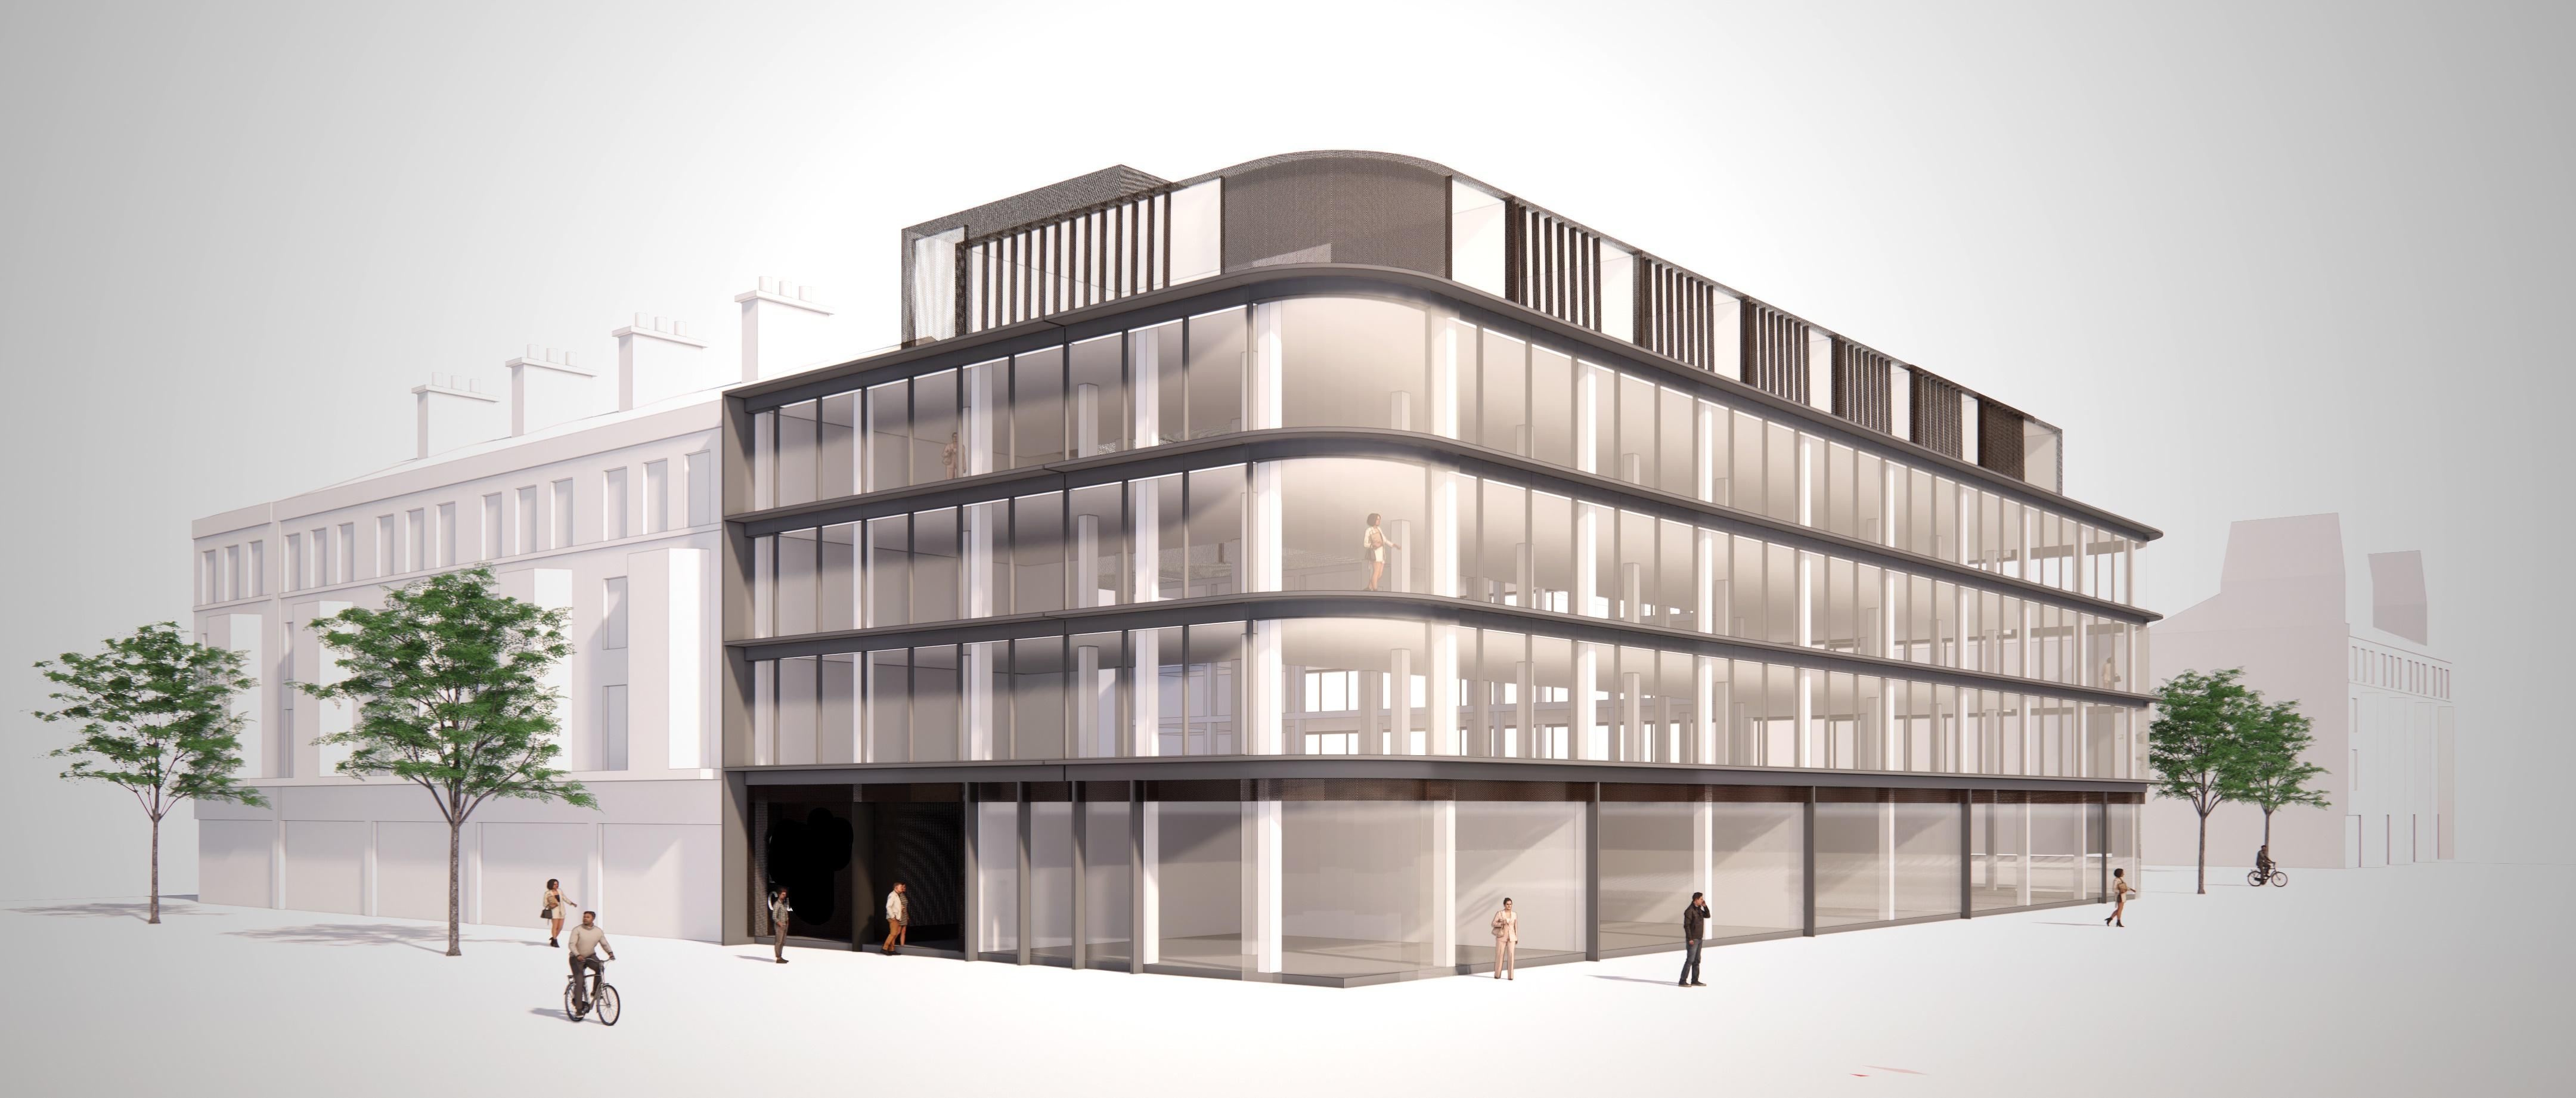 An artist's impression of how Pavilion House in Scarborough could look